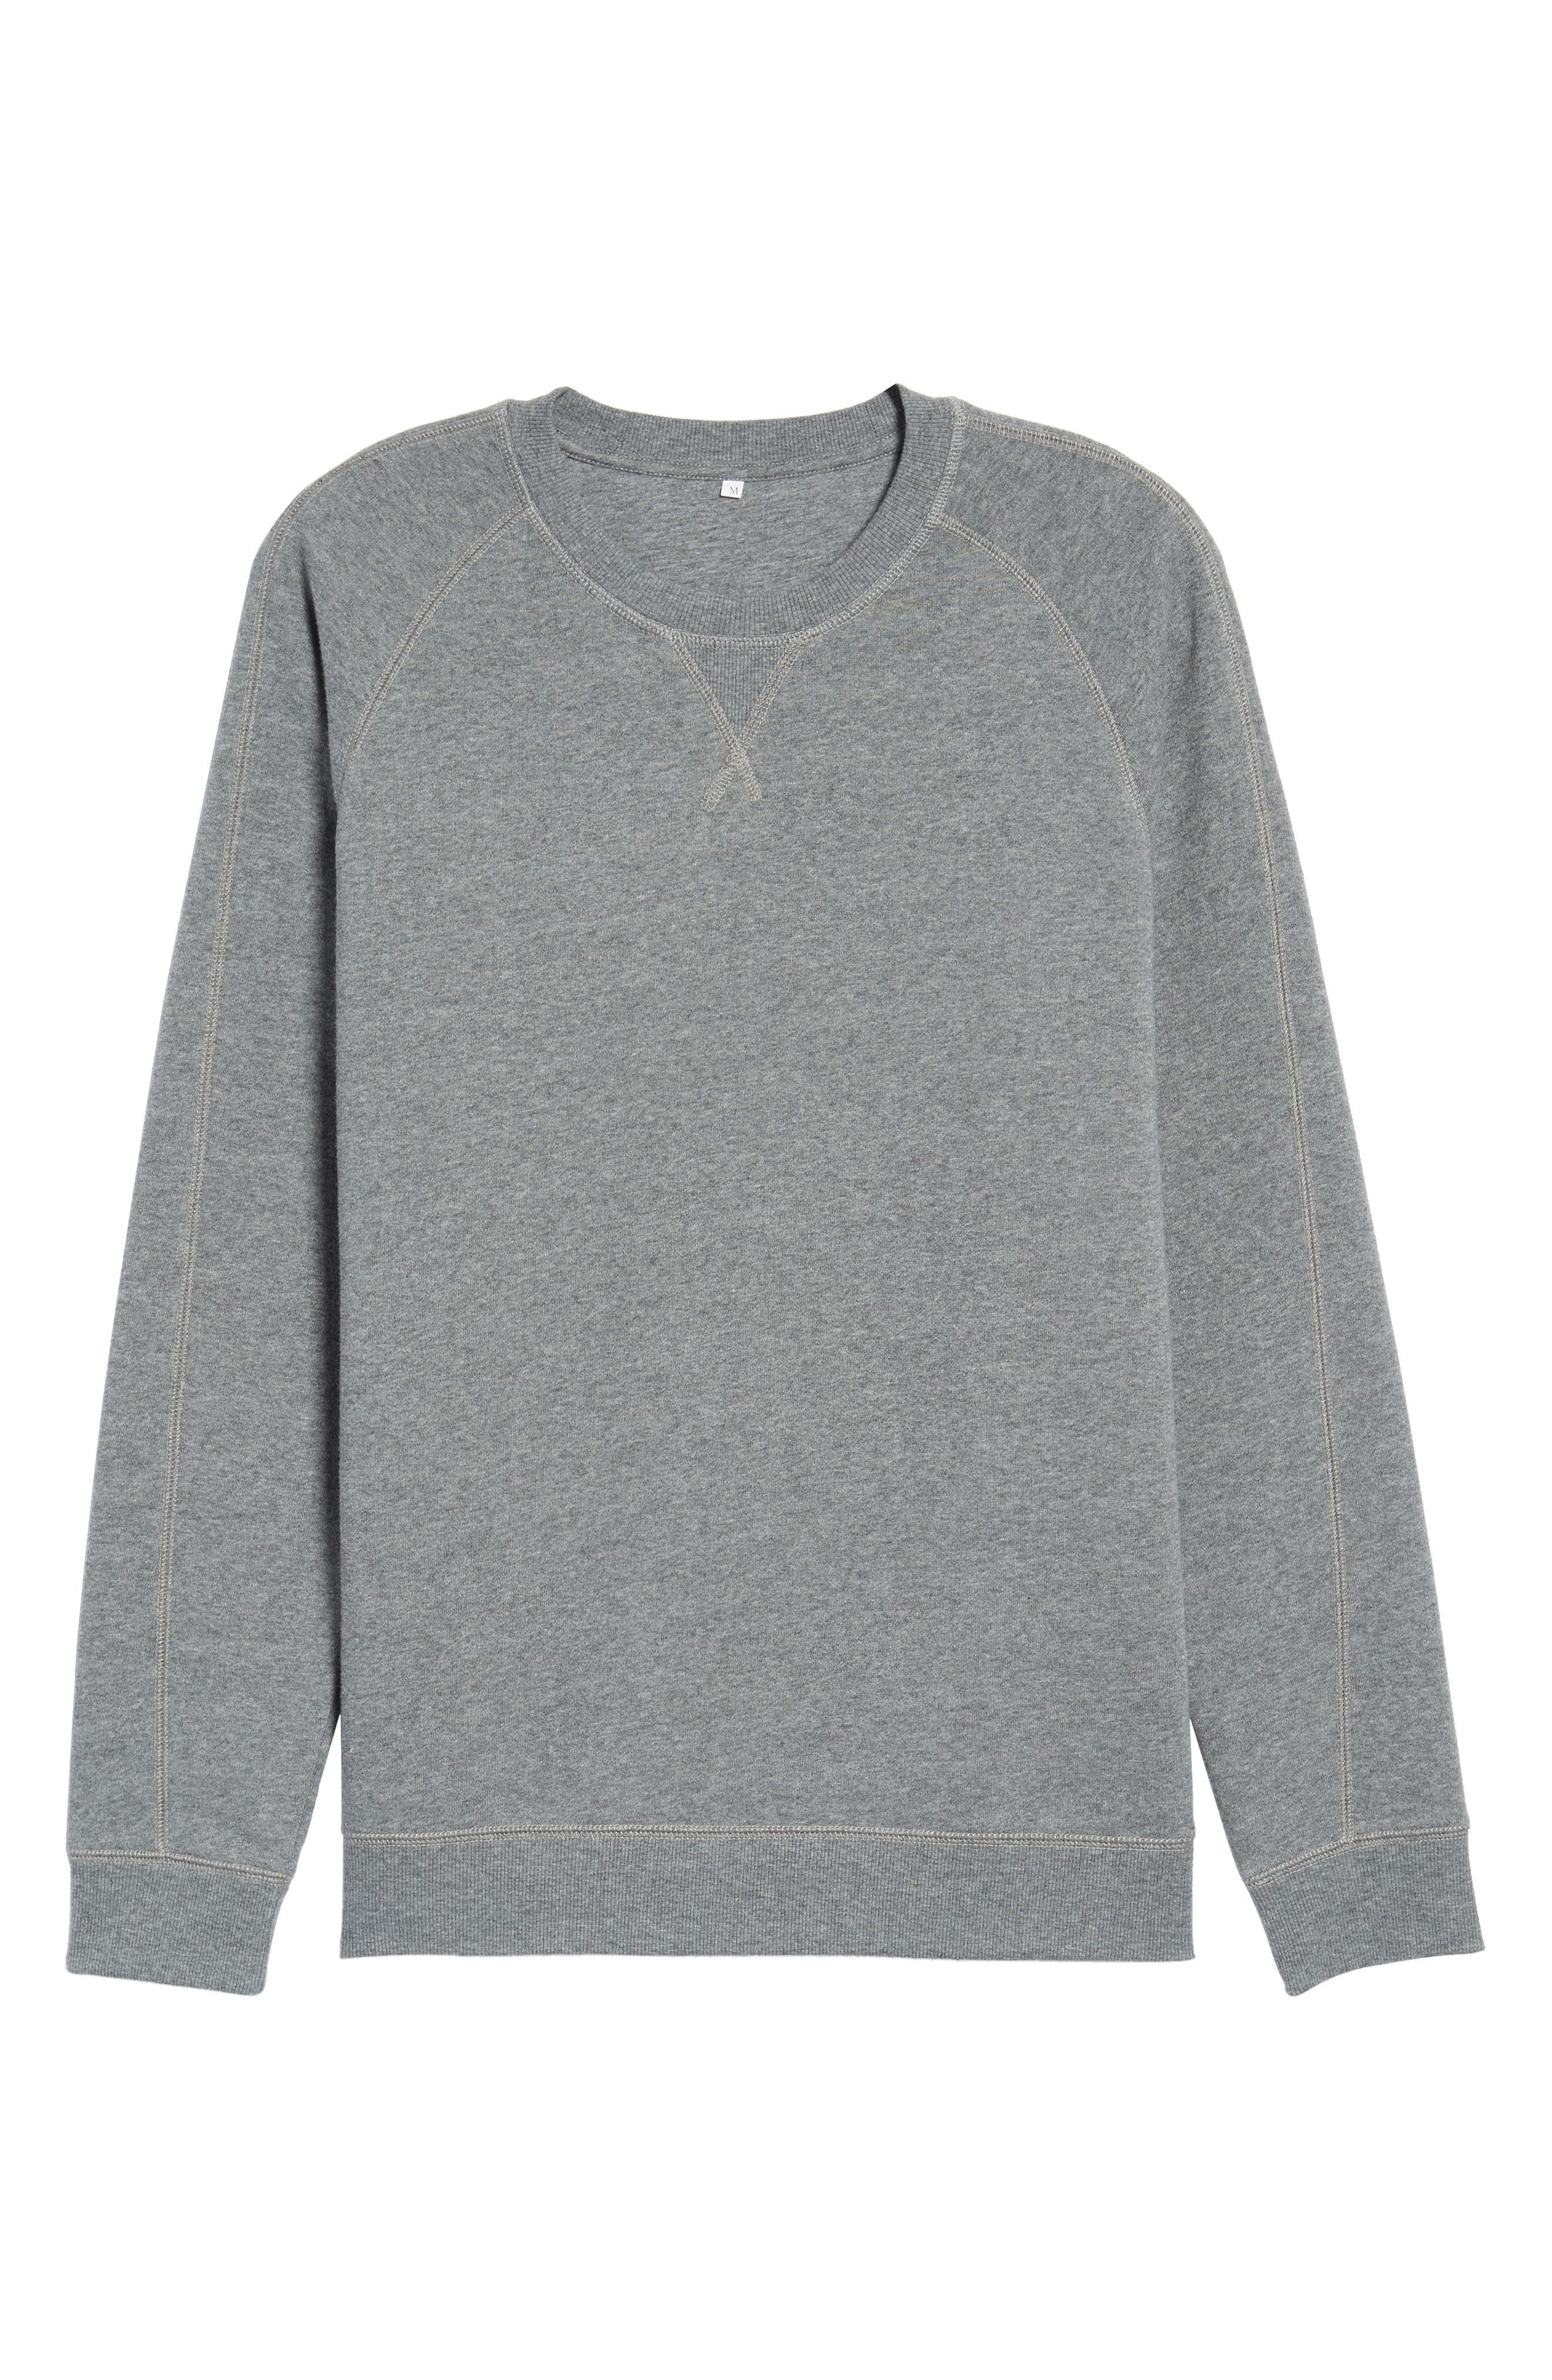 Fleece Sweatshirt,                             Alternate thumbnail 6, color,                             030